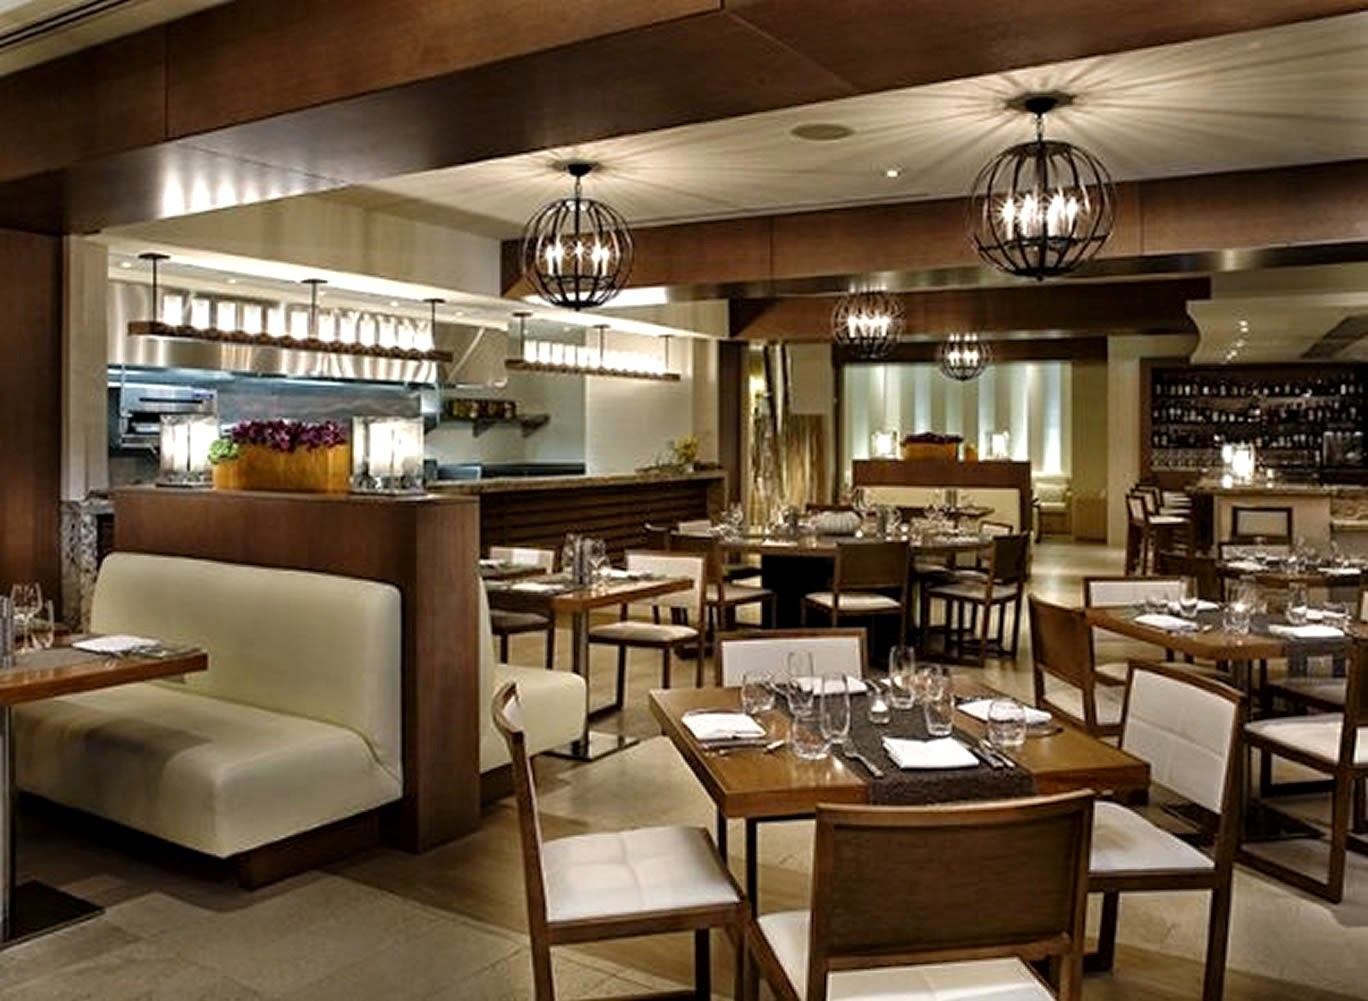 Interior design kitchen restaurant interior design for Interior decoration pictures of restaurant